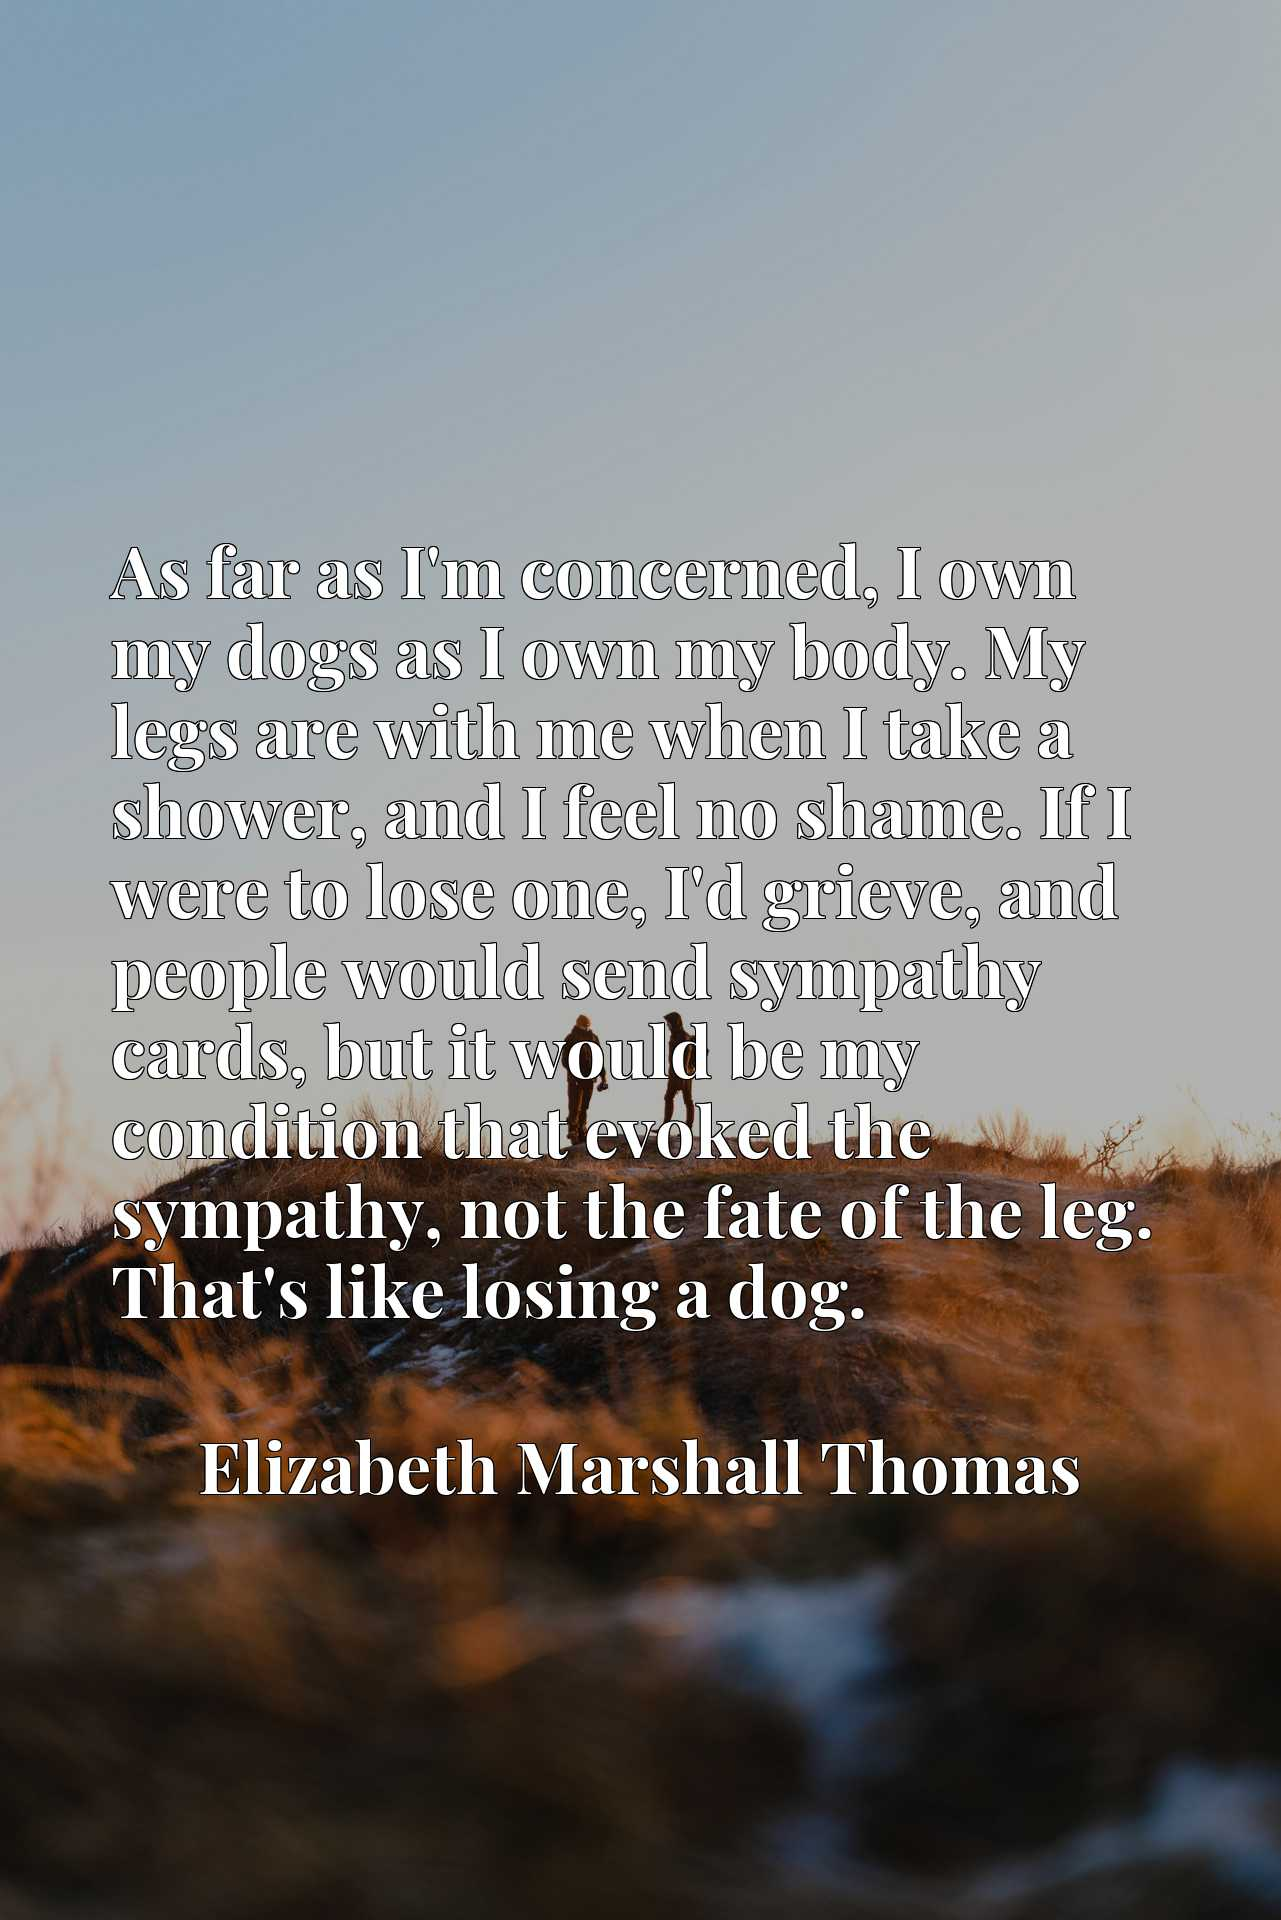 As far as I'm concerned, I own my dogs as I own my body. My legs are with me when I take a shower, and I feel no shame. If I were to lose one, I'd grieve, and people would send sympathy cards, but it would be my condition that evoked the sympathy, not the fate of the leg. That's like losing a dog.